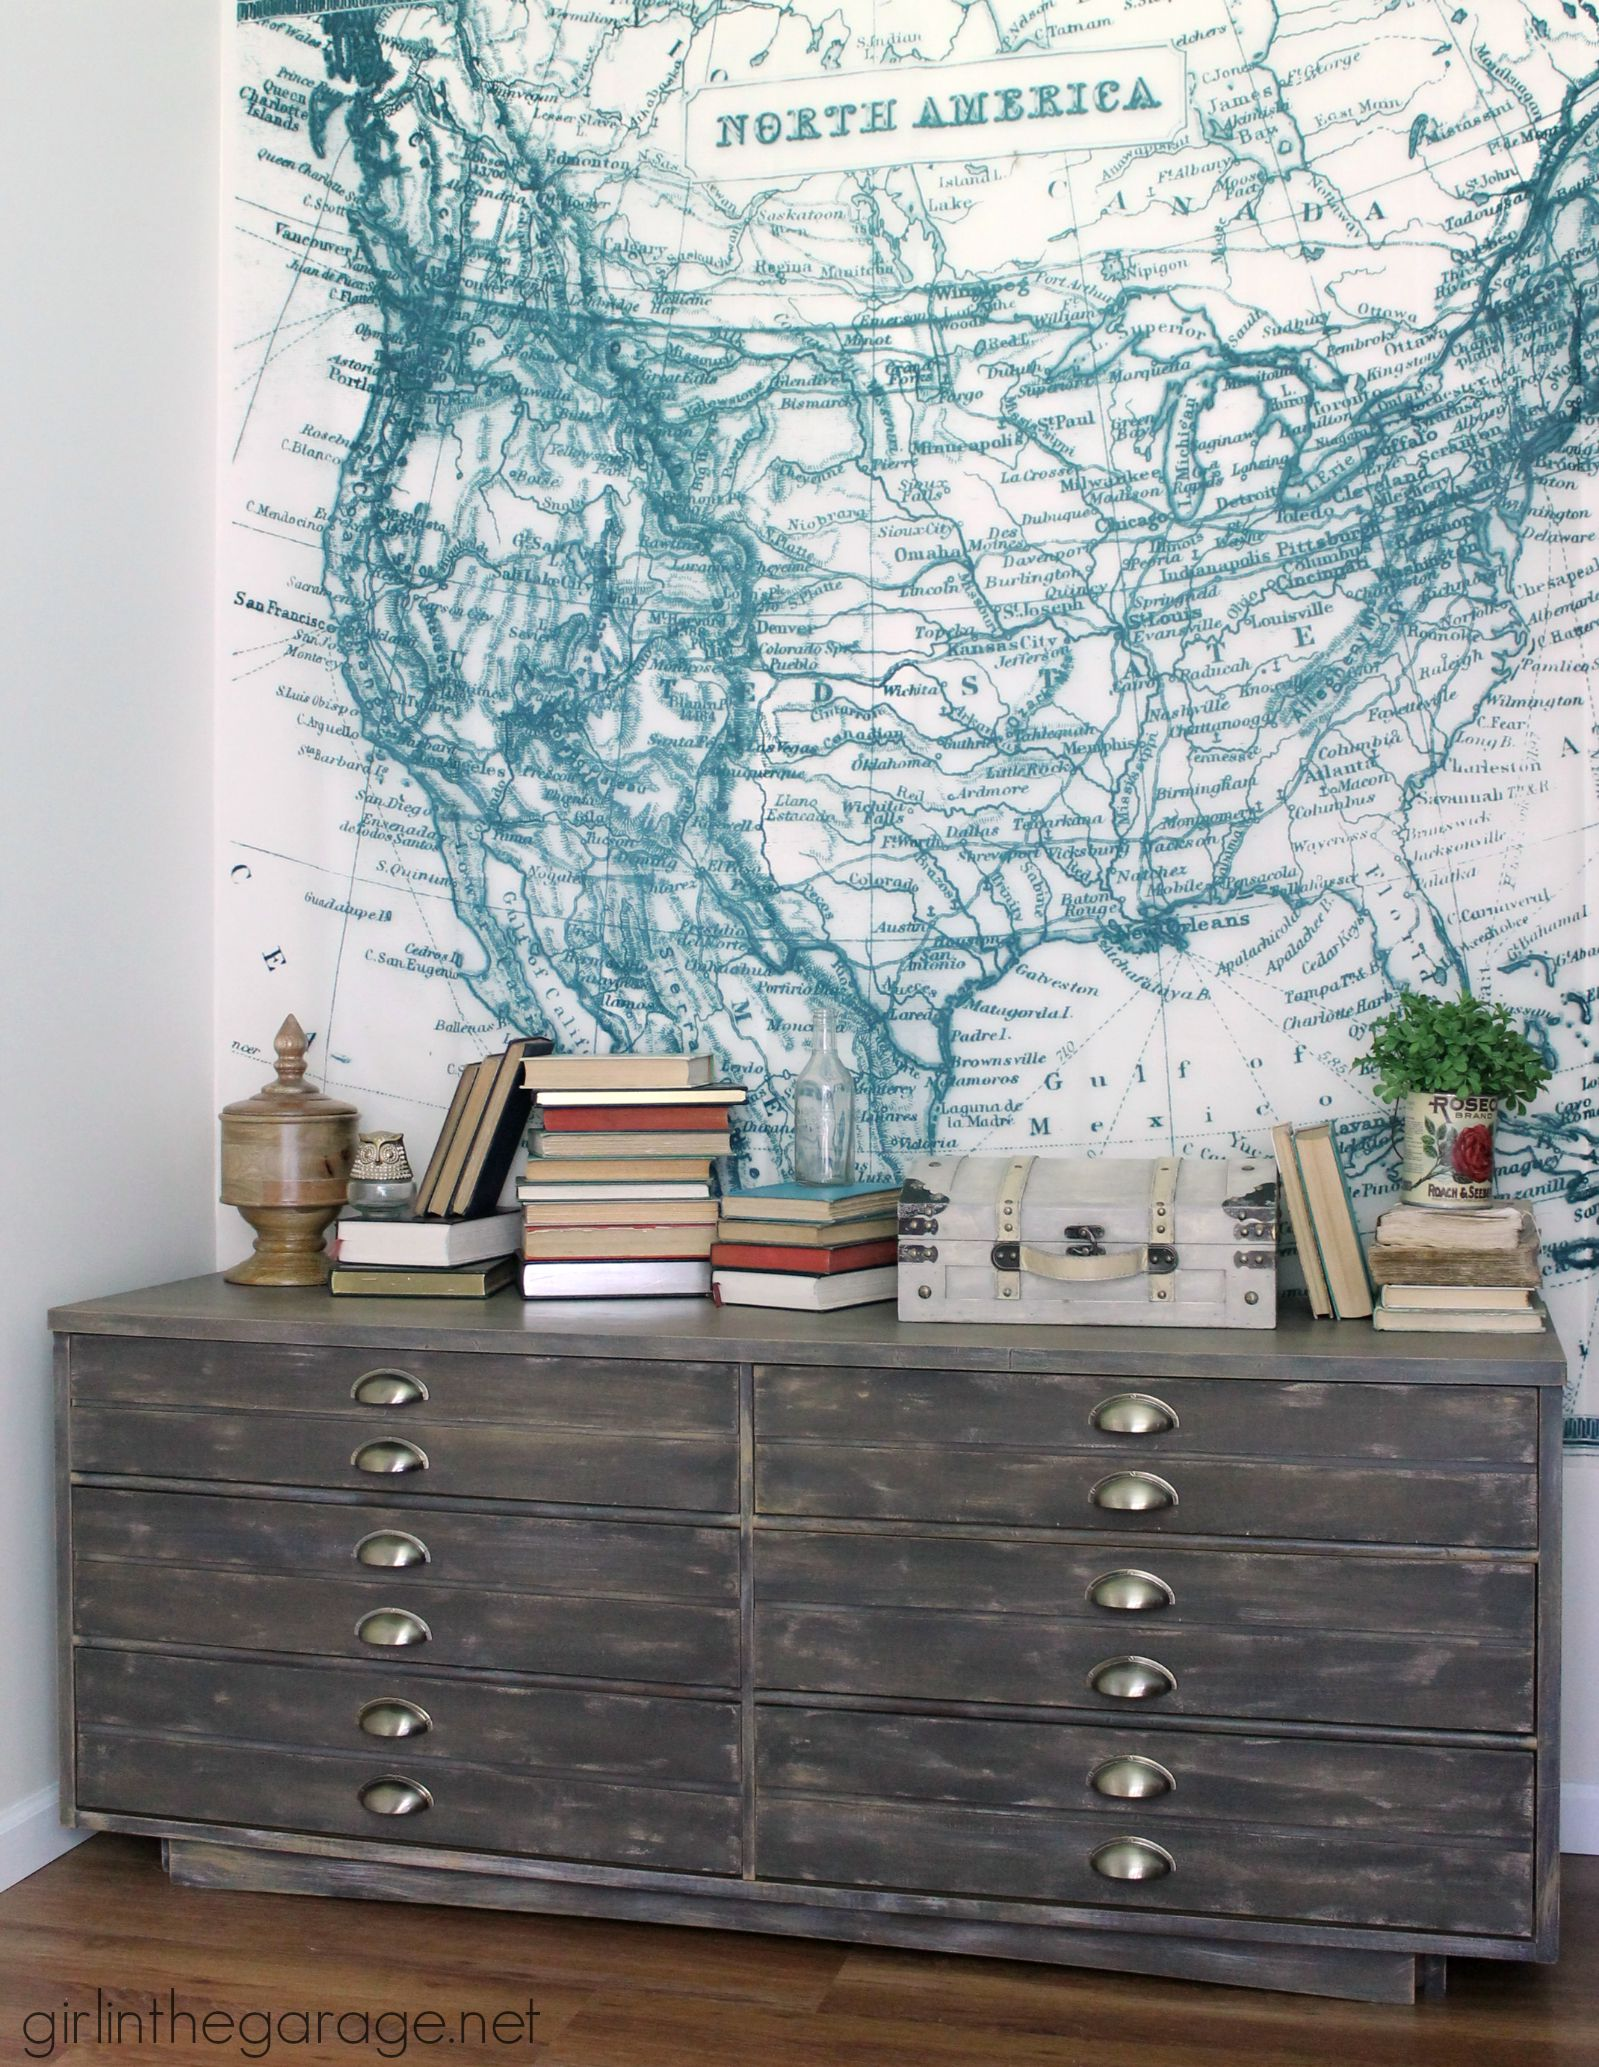 Anthropologie inspired industrial dresser makeover - Trash to Treasure - Girl in the Garage